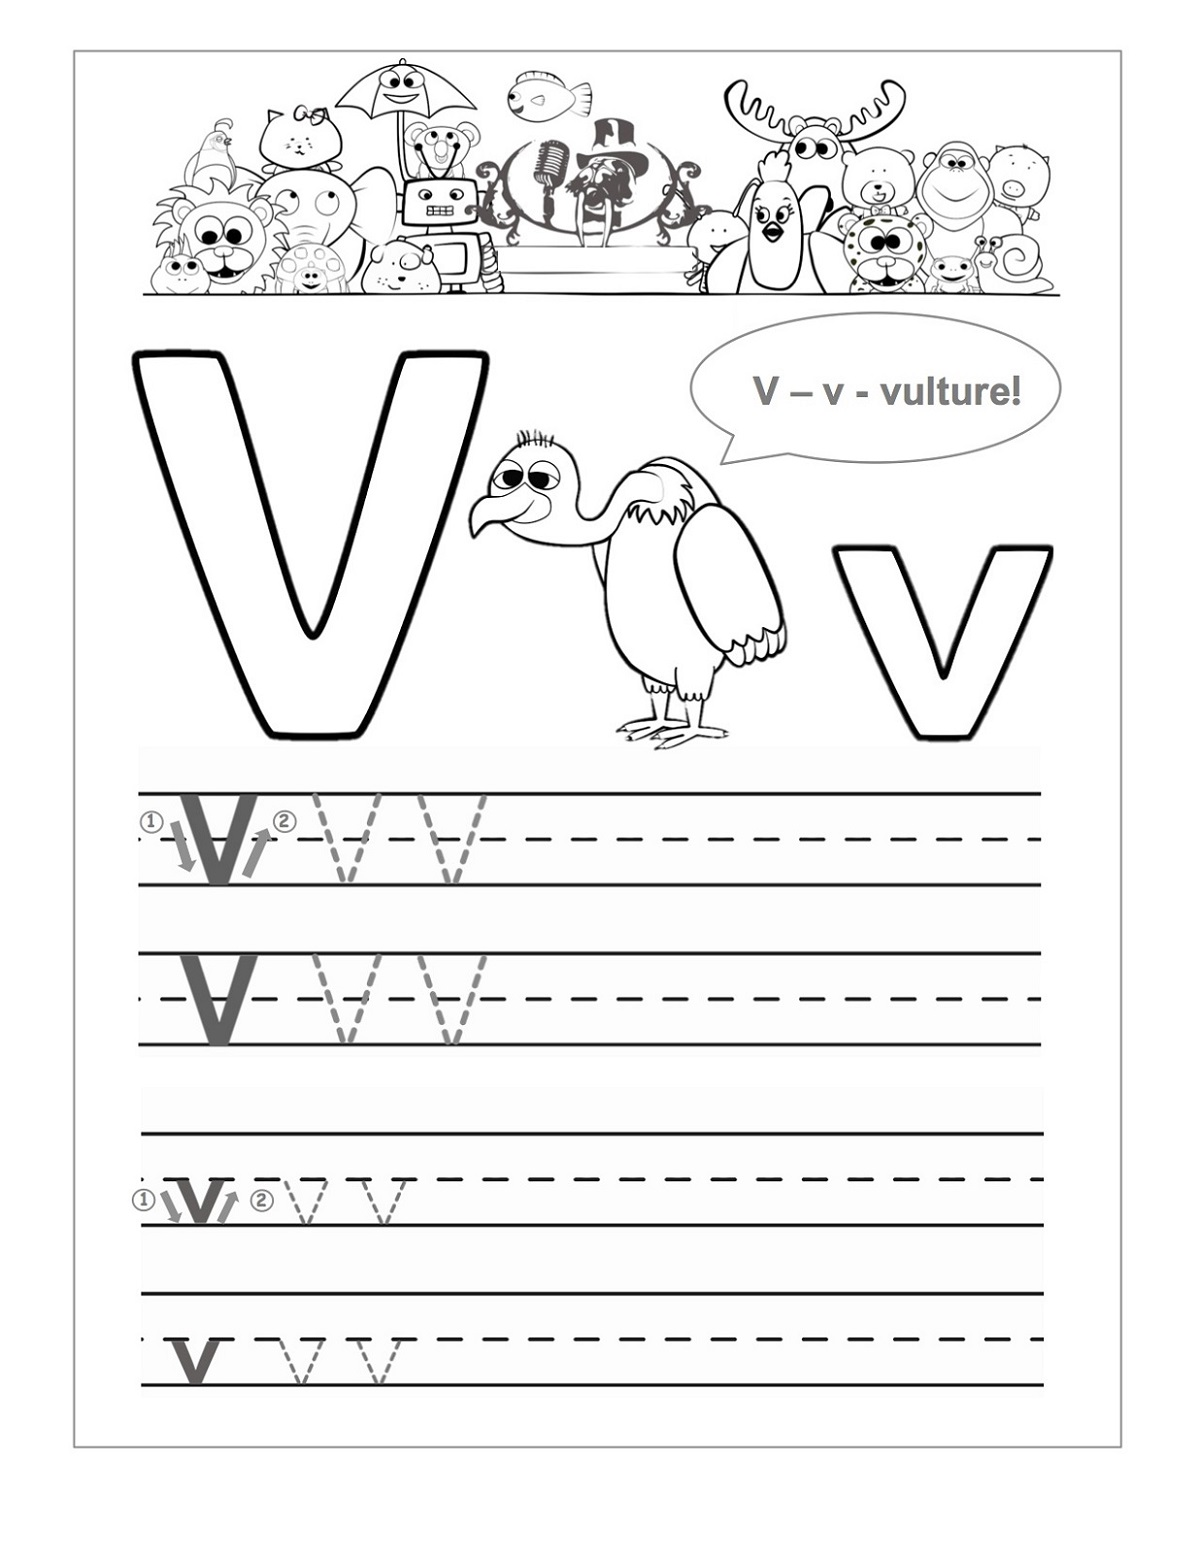 Printable Letter V Worksheets